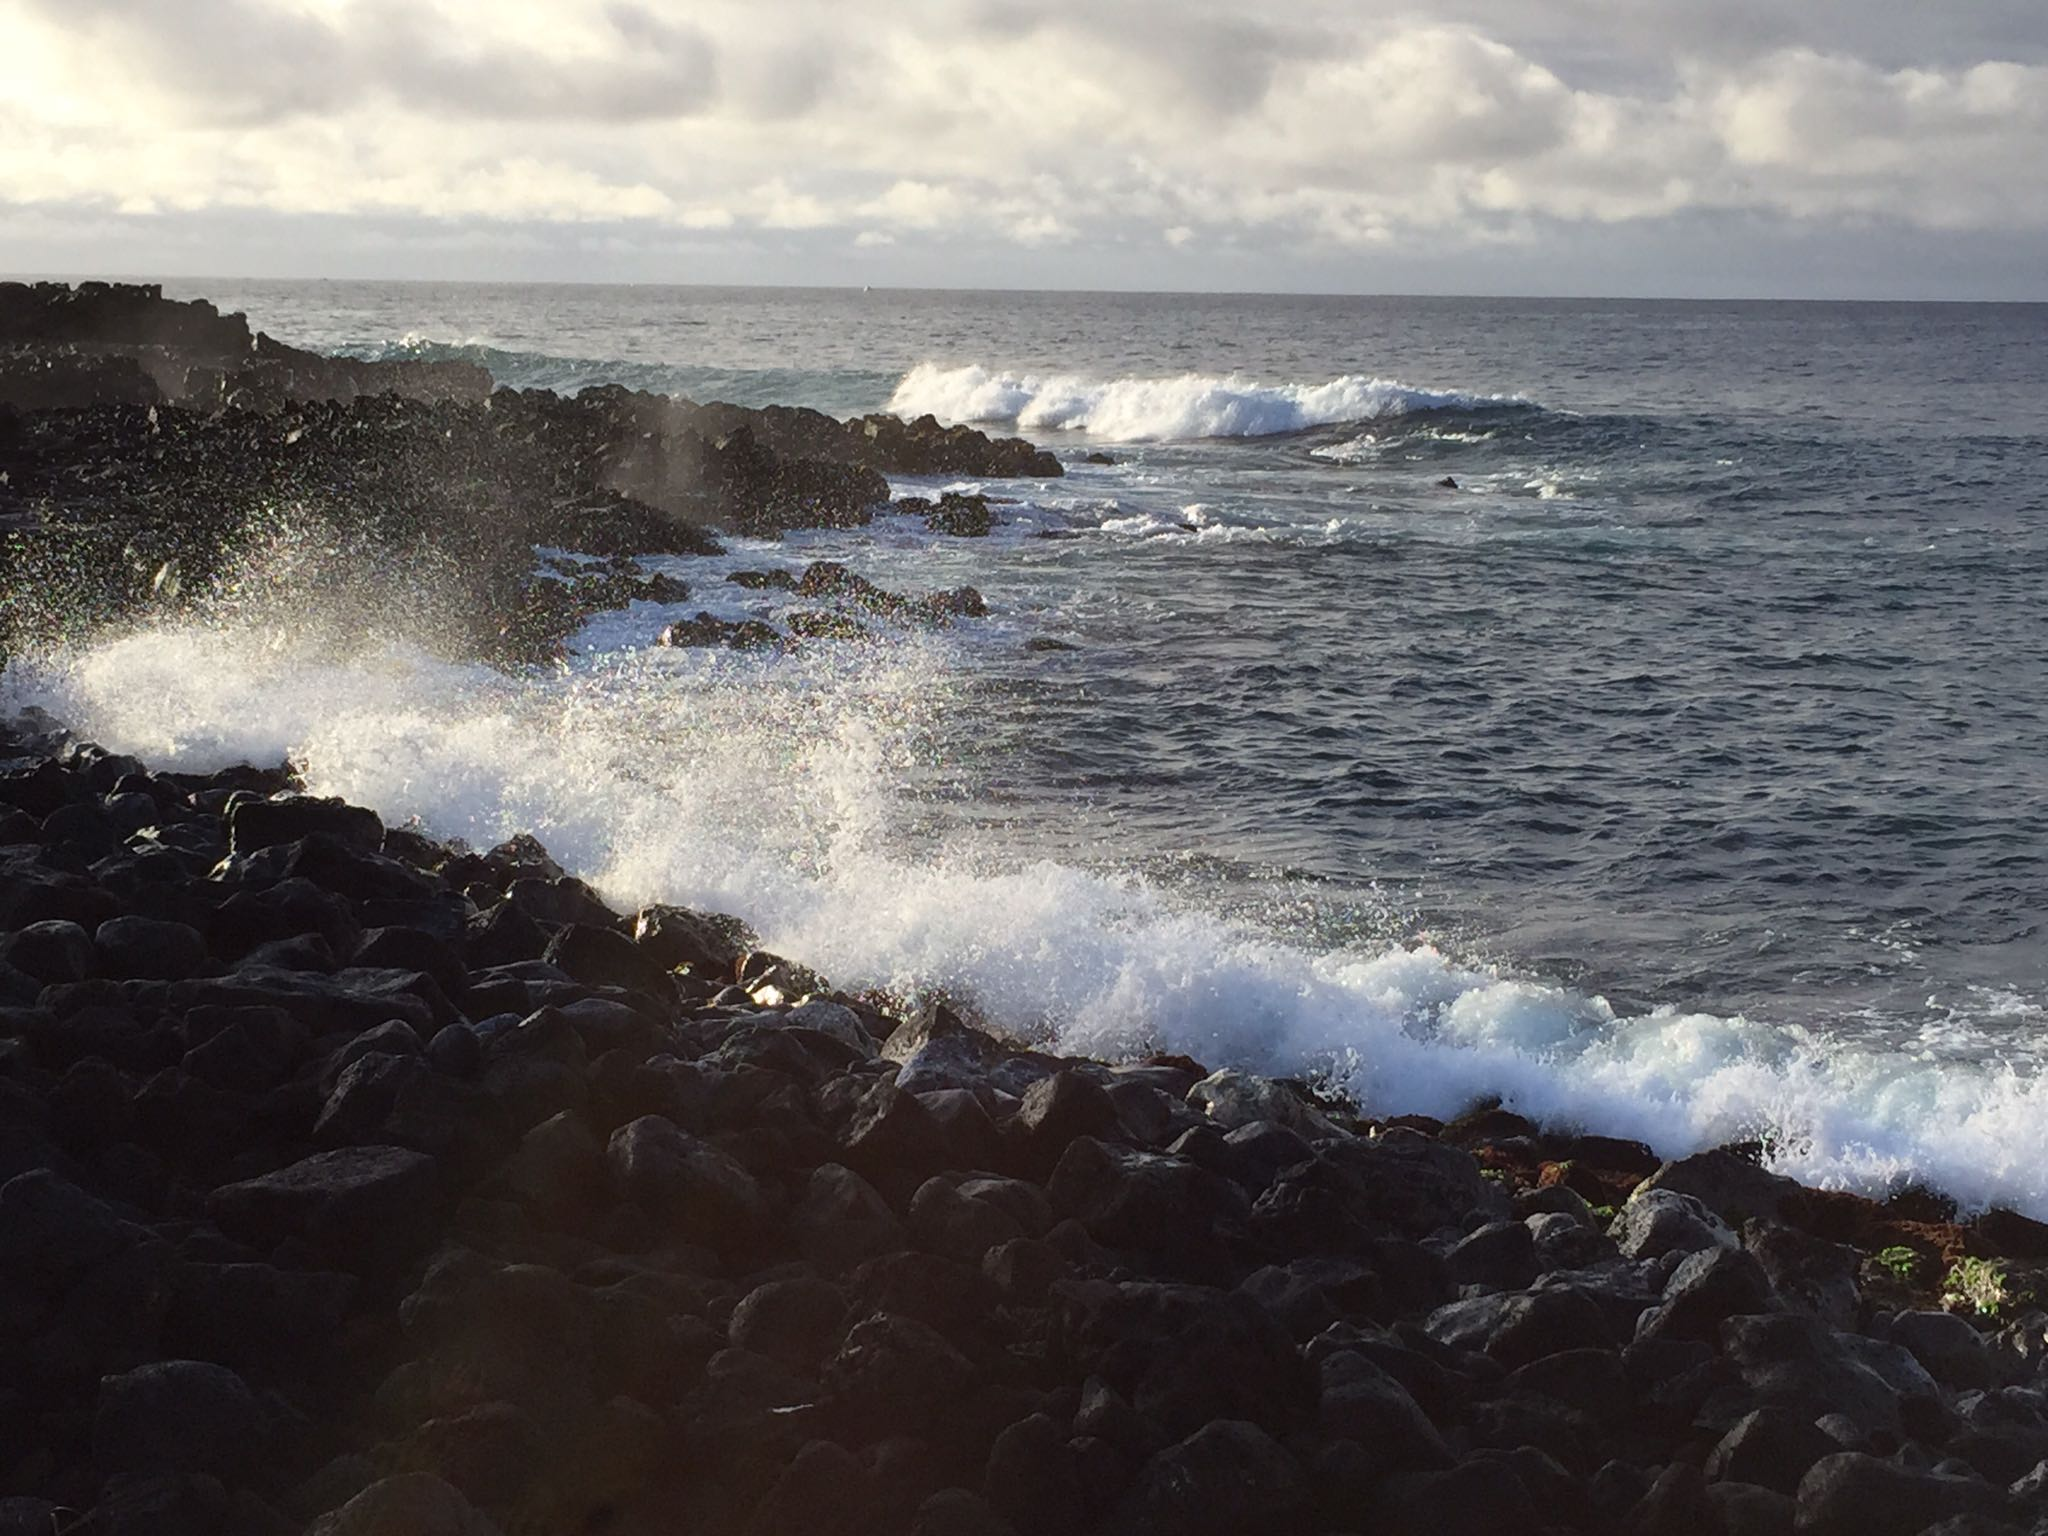 - Look at this picture.What draws your eye the most - the waves or the rocks?